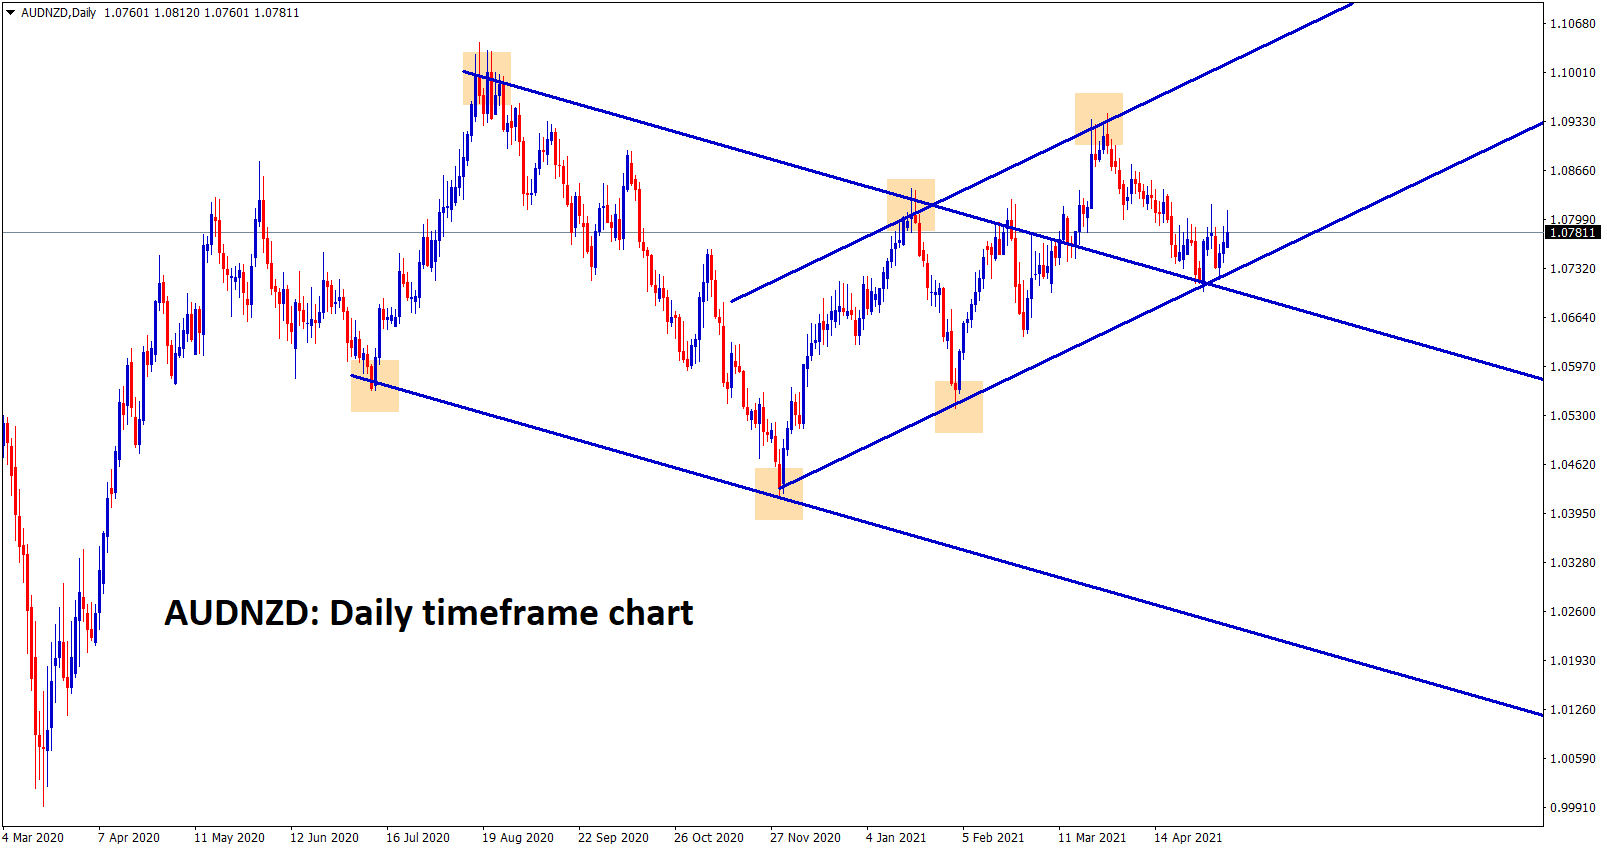 AUDNZD is moving between the channel ranges in the daily chart 1